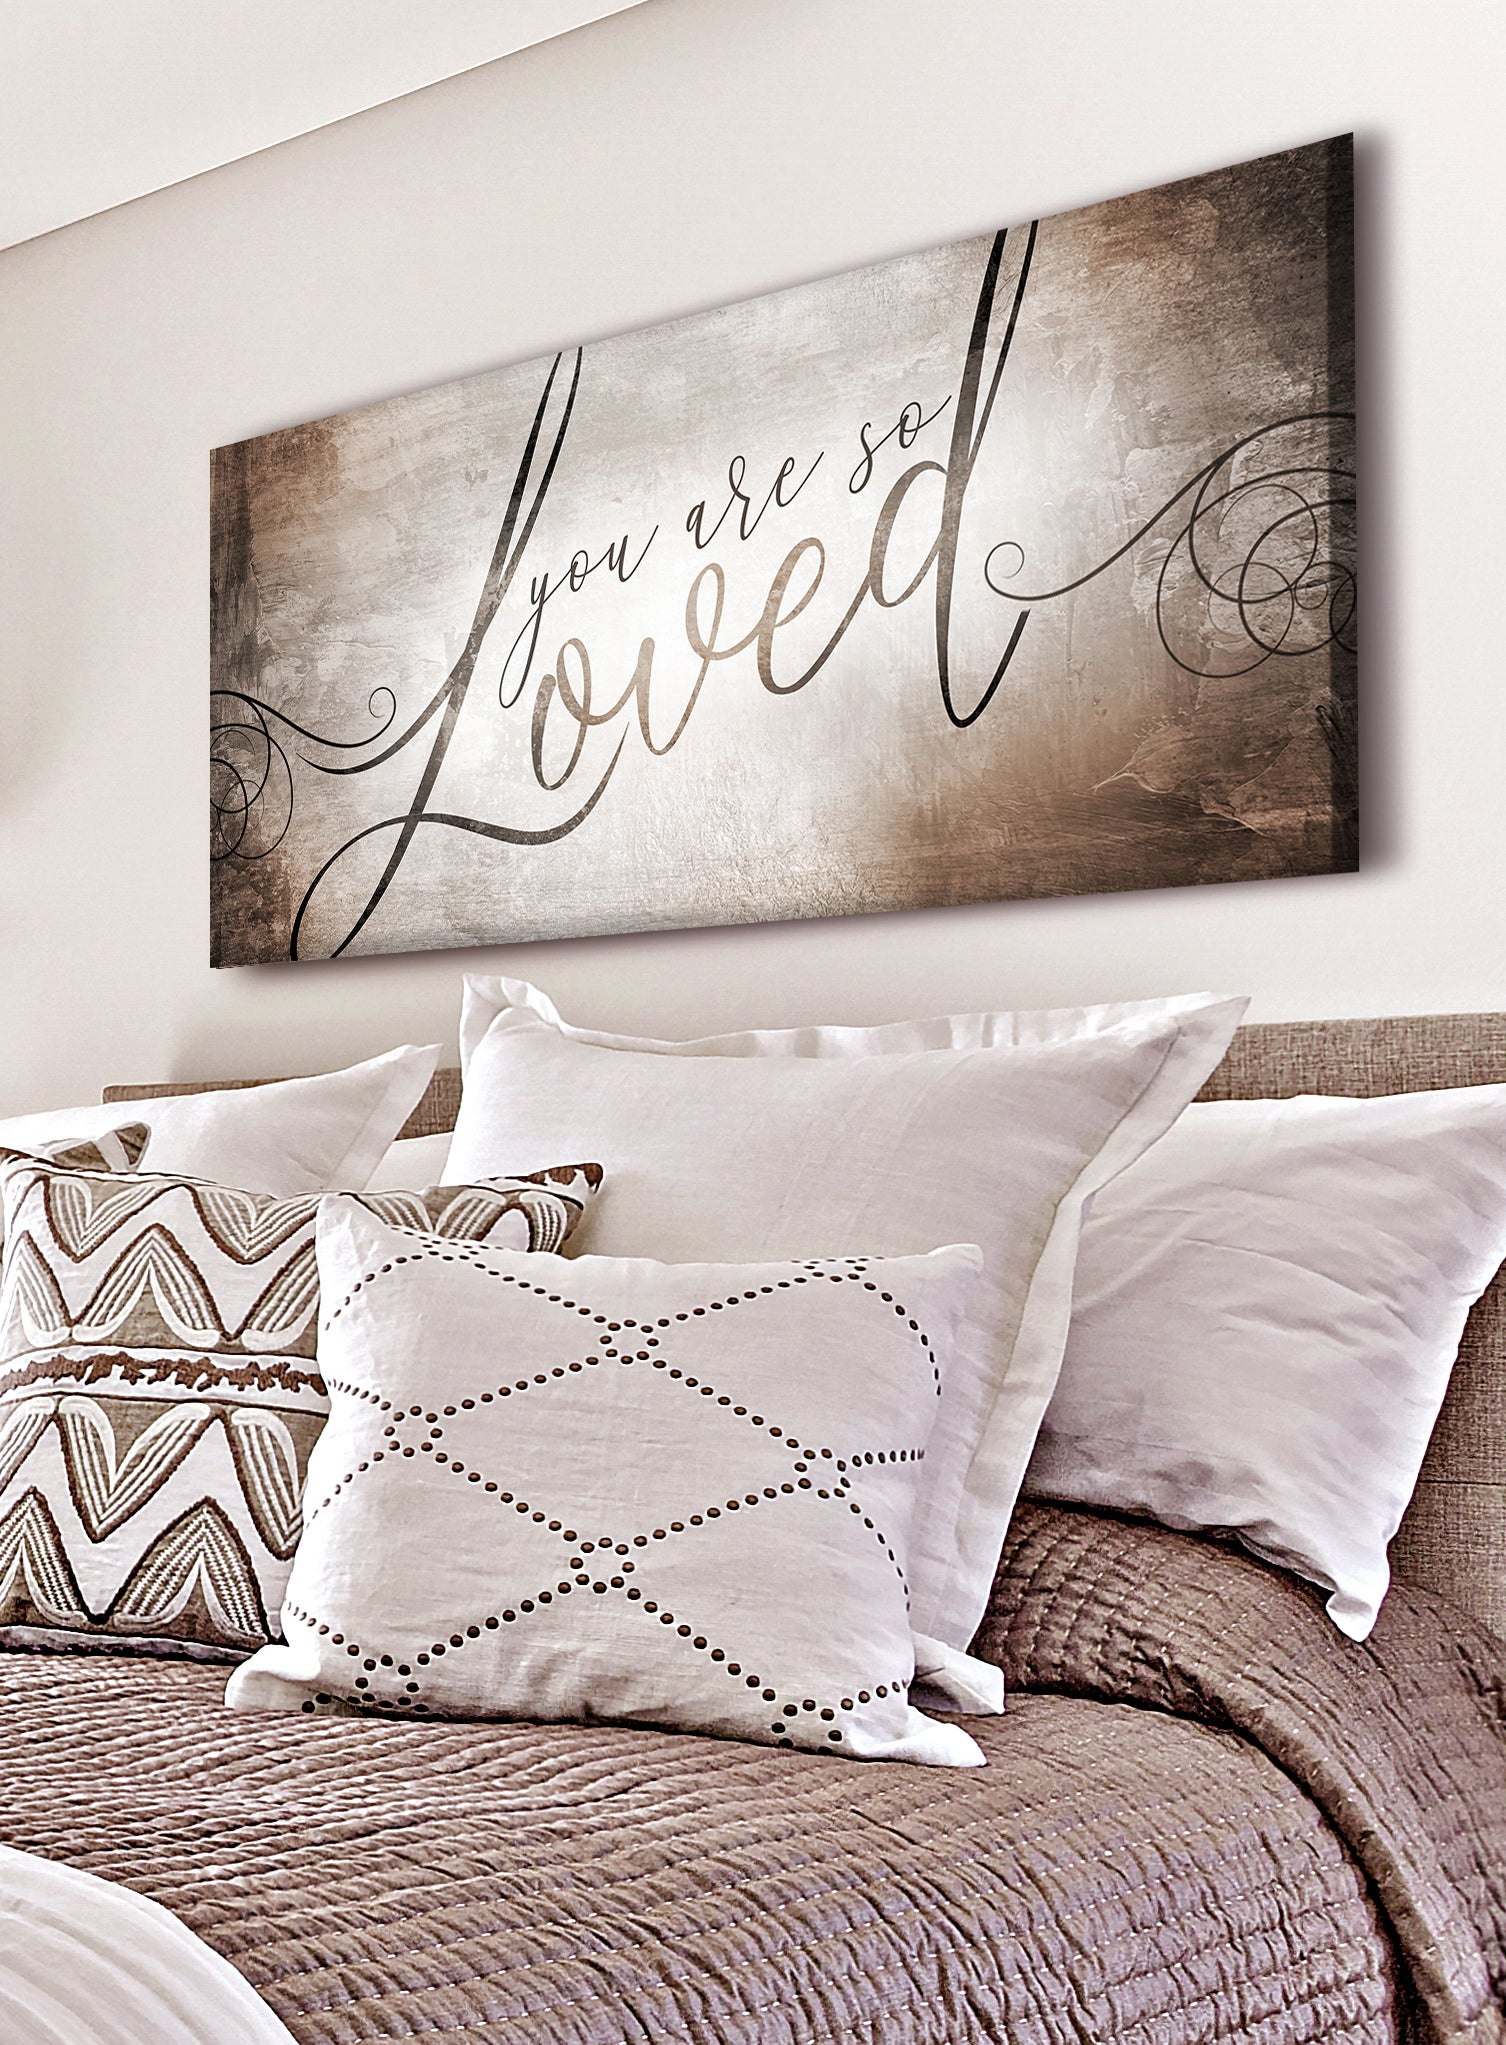 Couples Wall Art: You Are So Loved V2 (Wood Frame Ready To Hang)